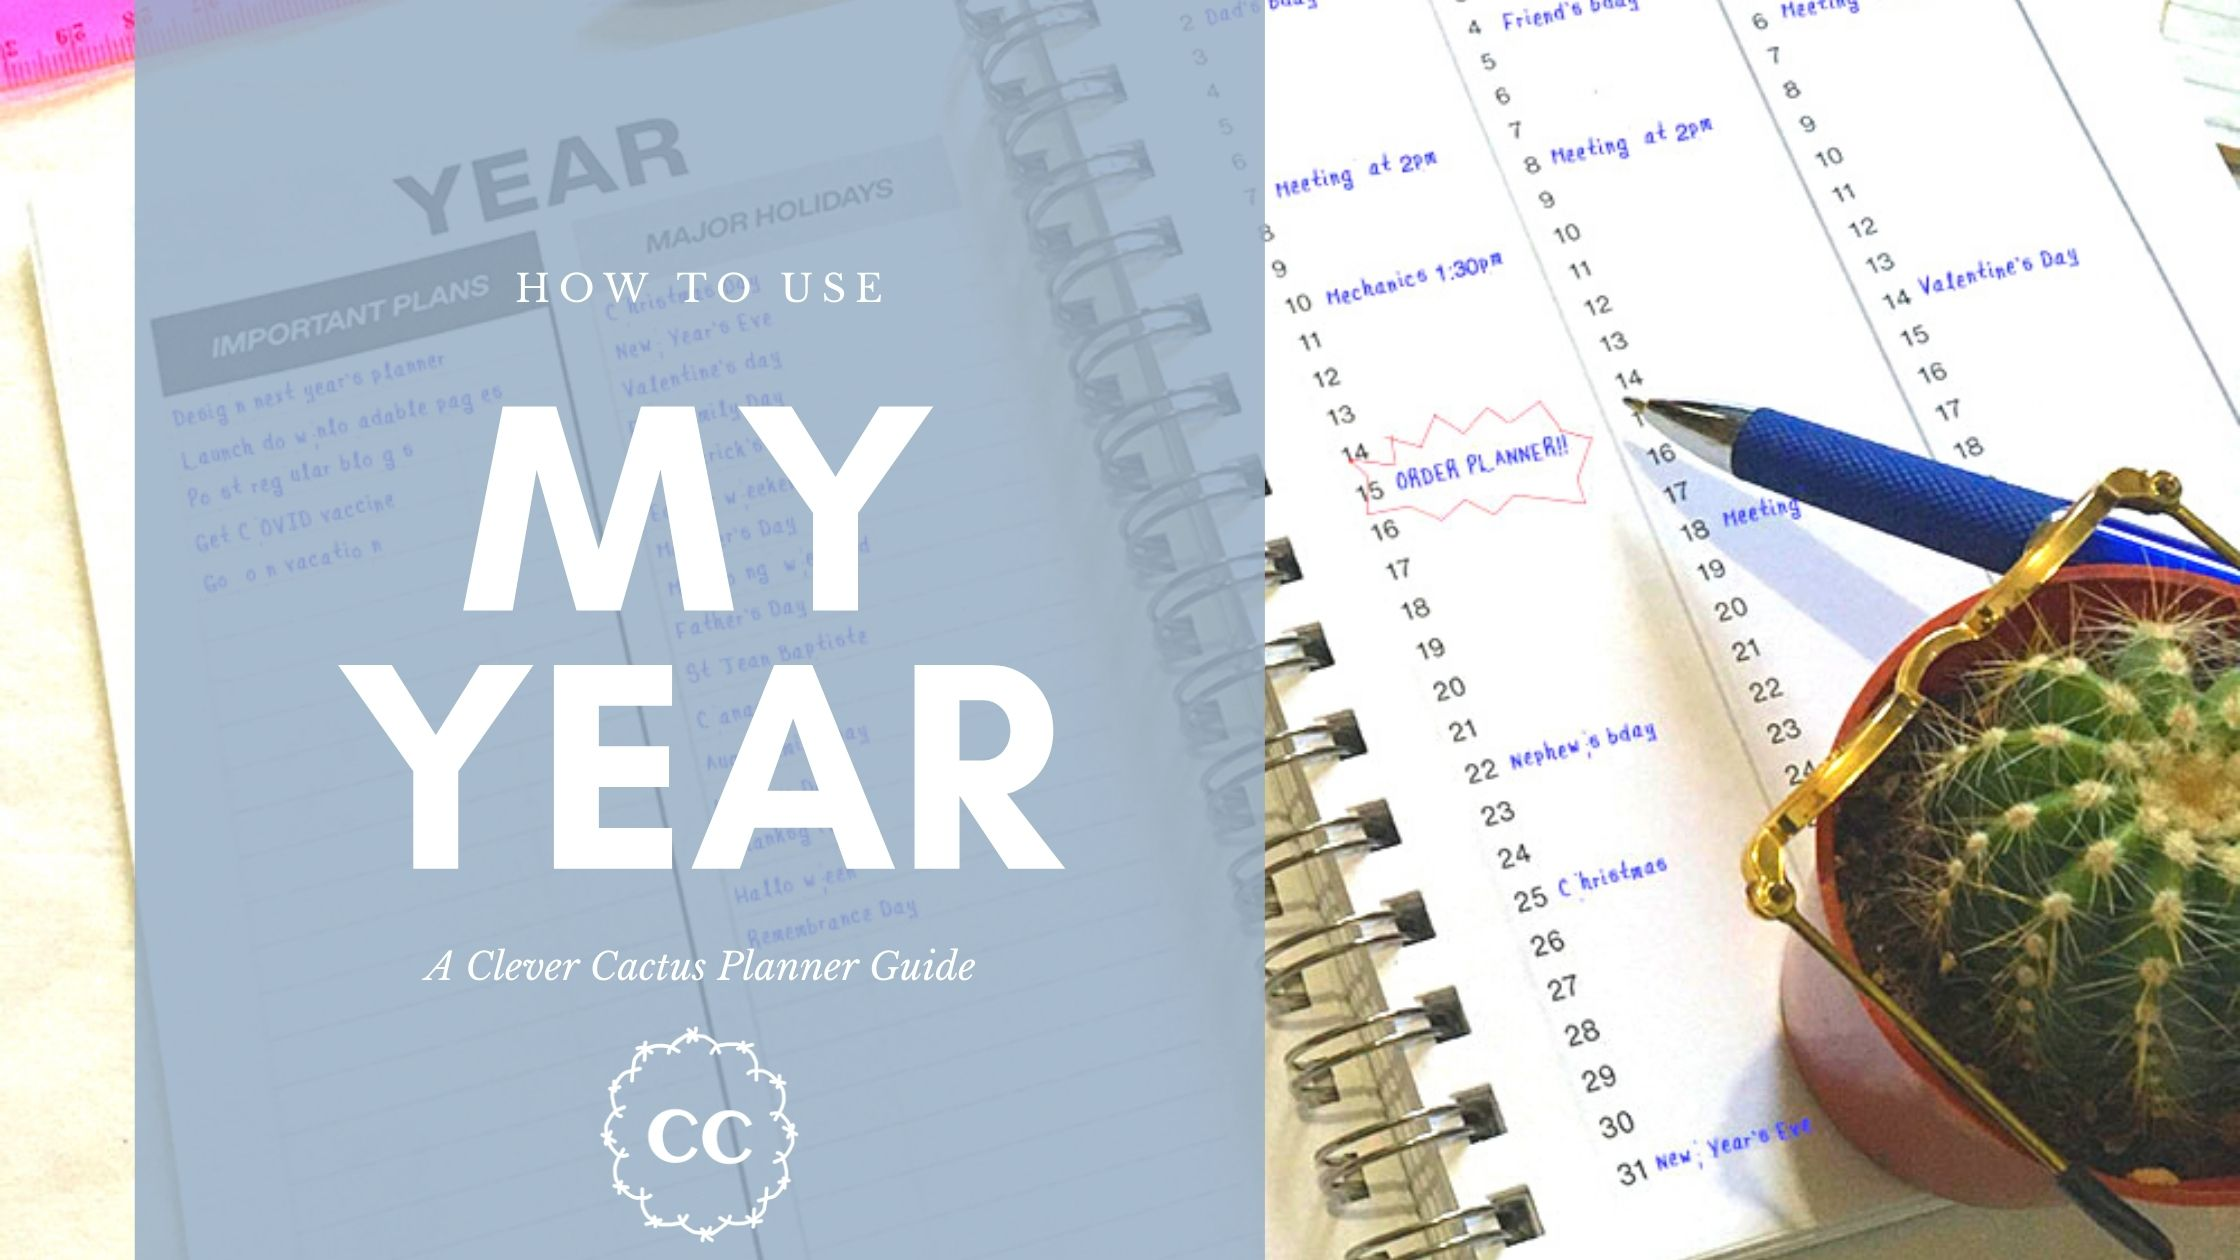 My Year Guide Clever Cactus planner